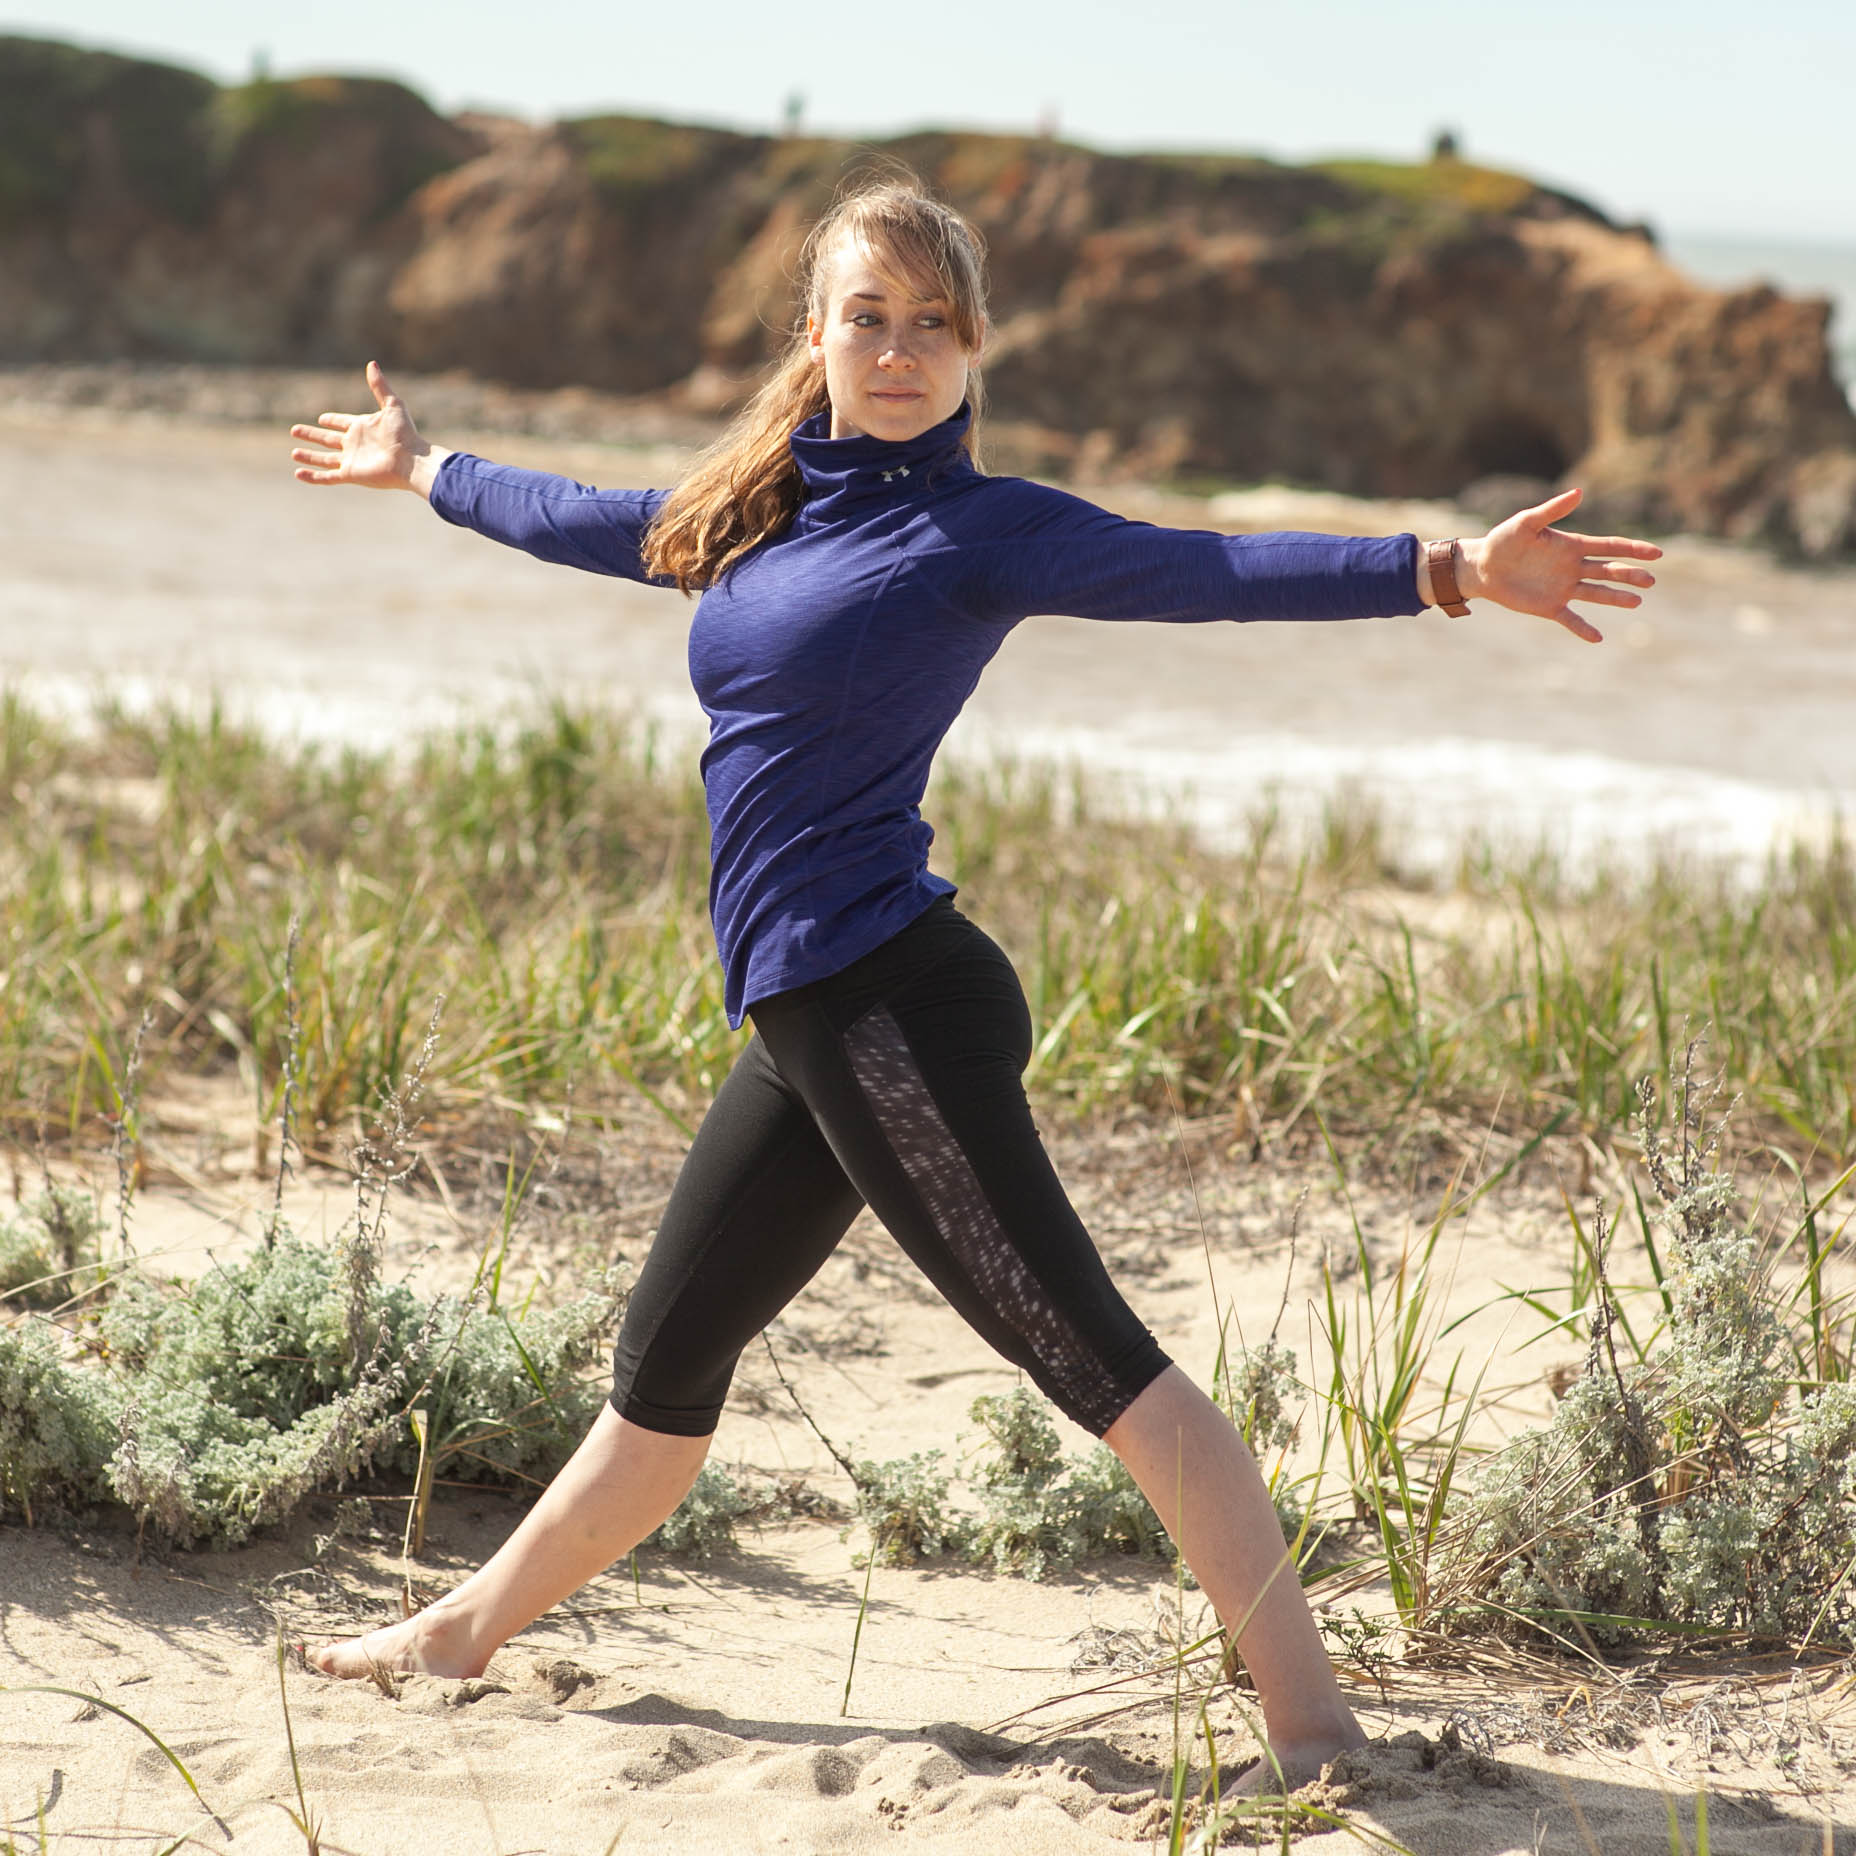 Private Yoga Sessions - To deepen your practice and get more hands on experience sign up for private sessions. This can be done solo or with a couple. This is the best option for beginners, people working with injuries or advanced students who want more hands on corrections and to deepen their practice. Rates: $80-110.